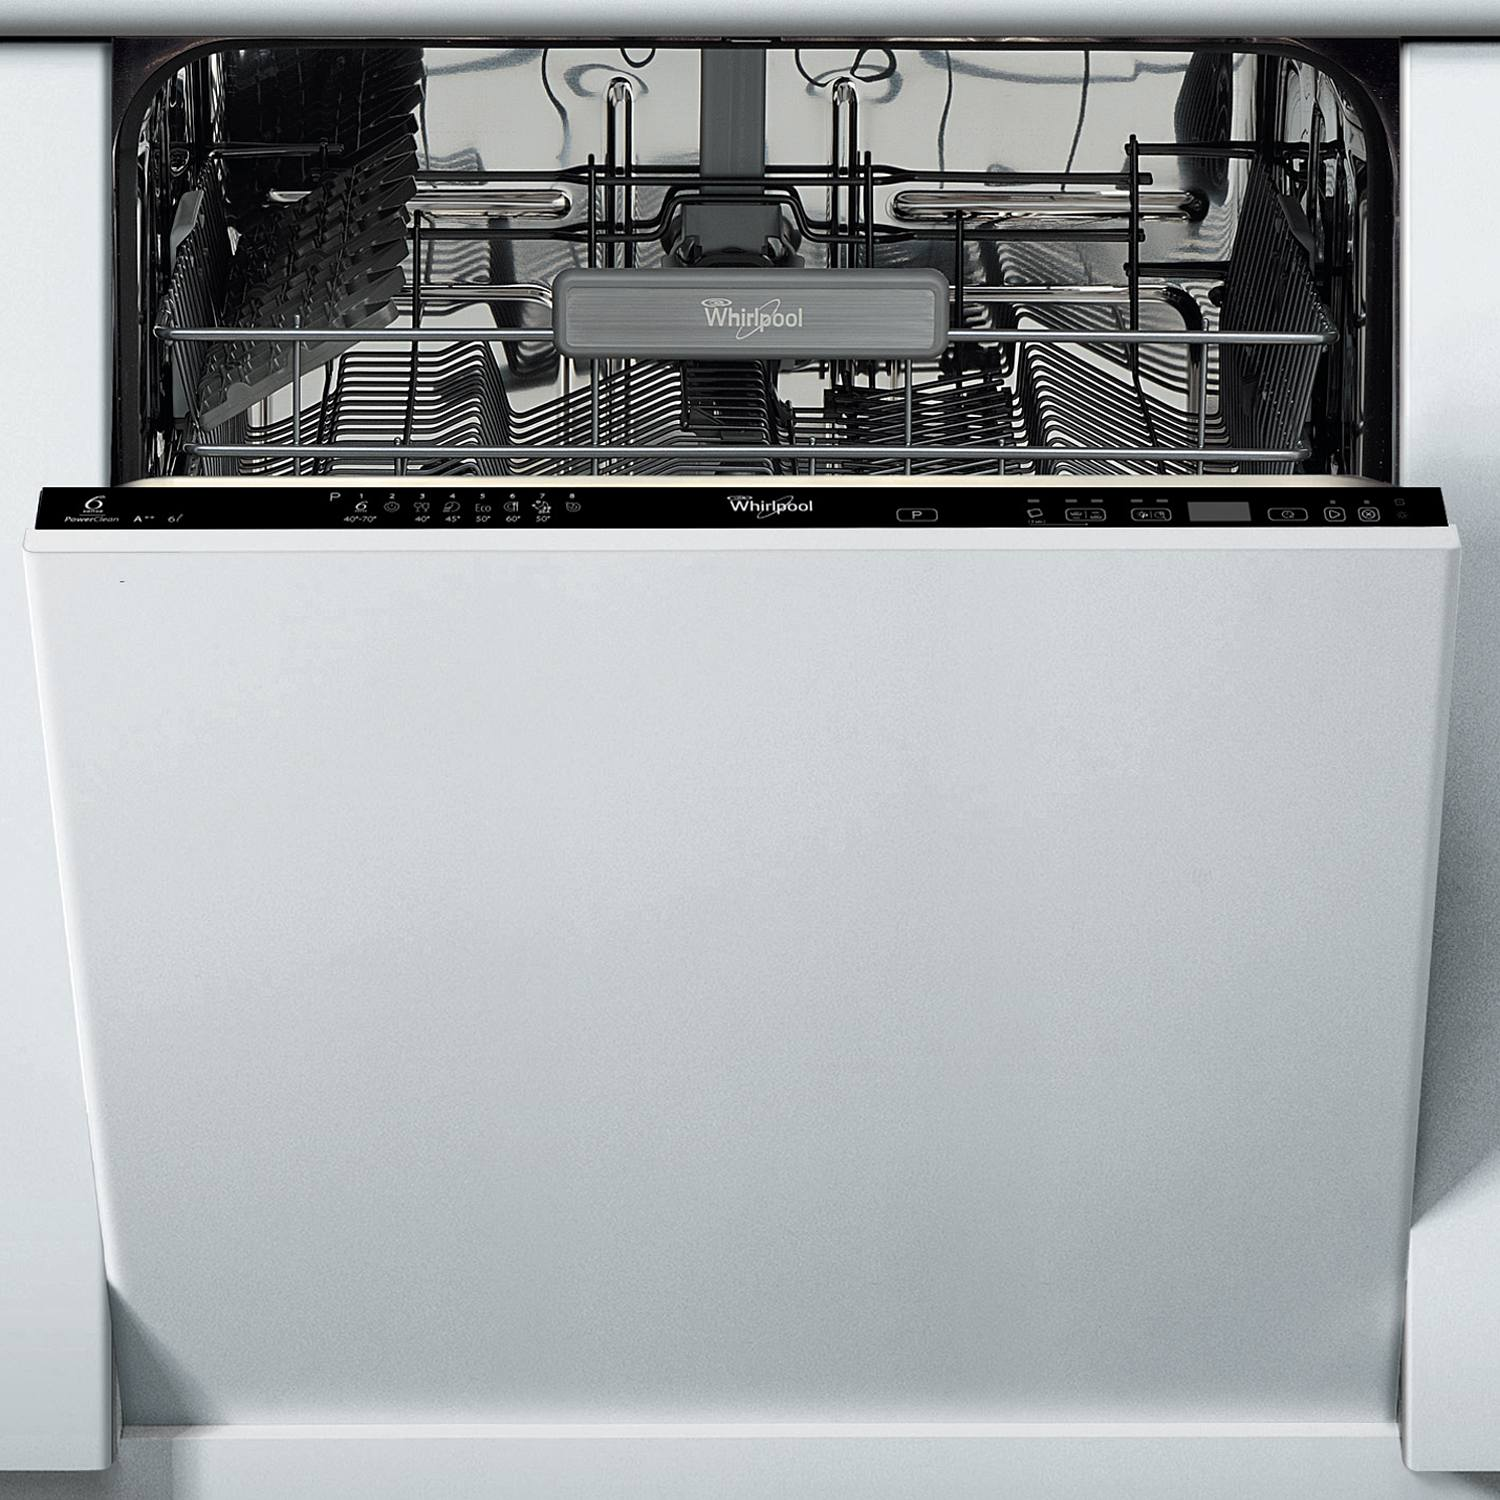 Whirlpool adg8900 6th sense fully integrated 13 place - Whirlpool power clean 6th sense notice ...